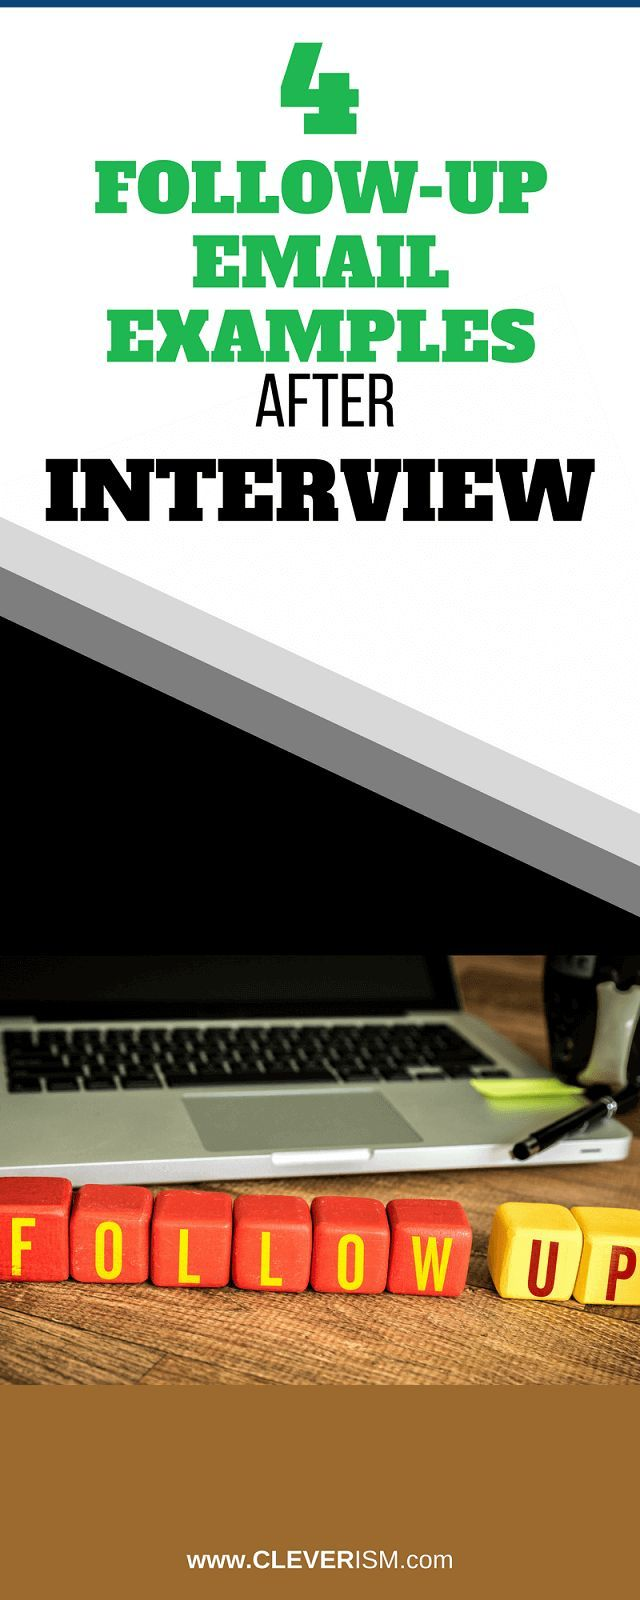 Follow Up After Interview Fair 4 Followup Email Examples After Interview  Job Interviews And Job .